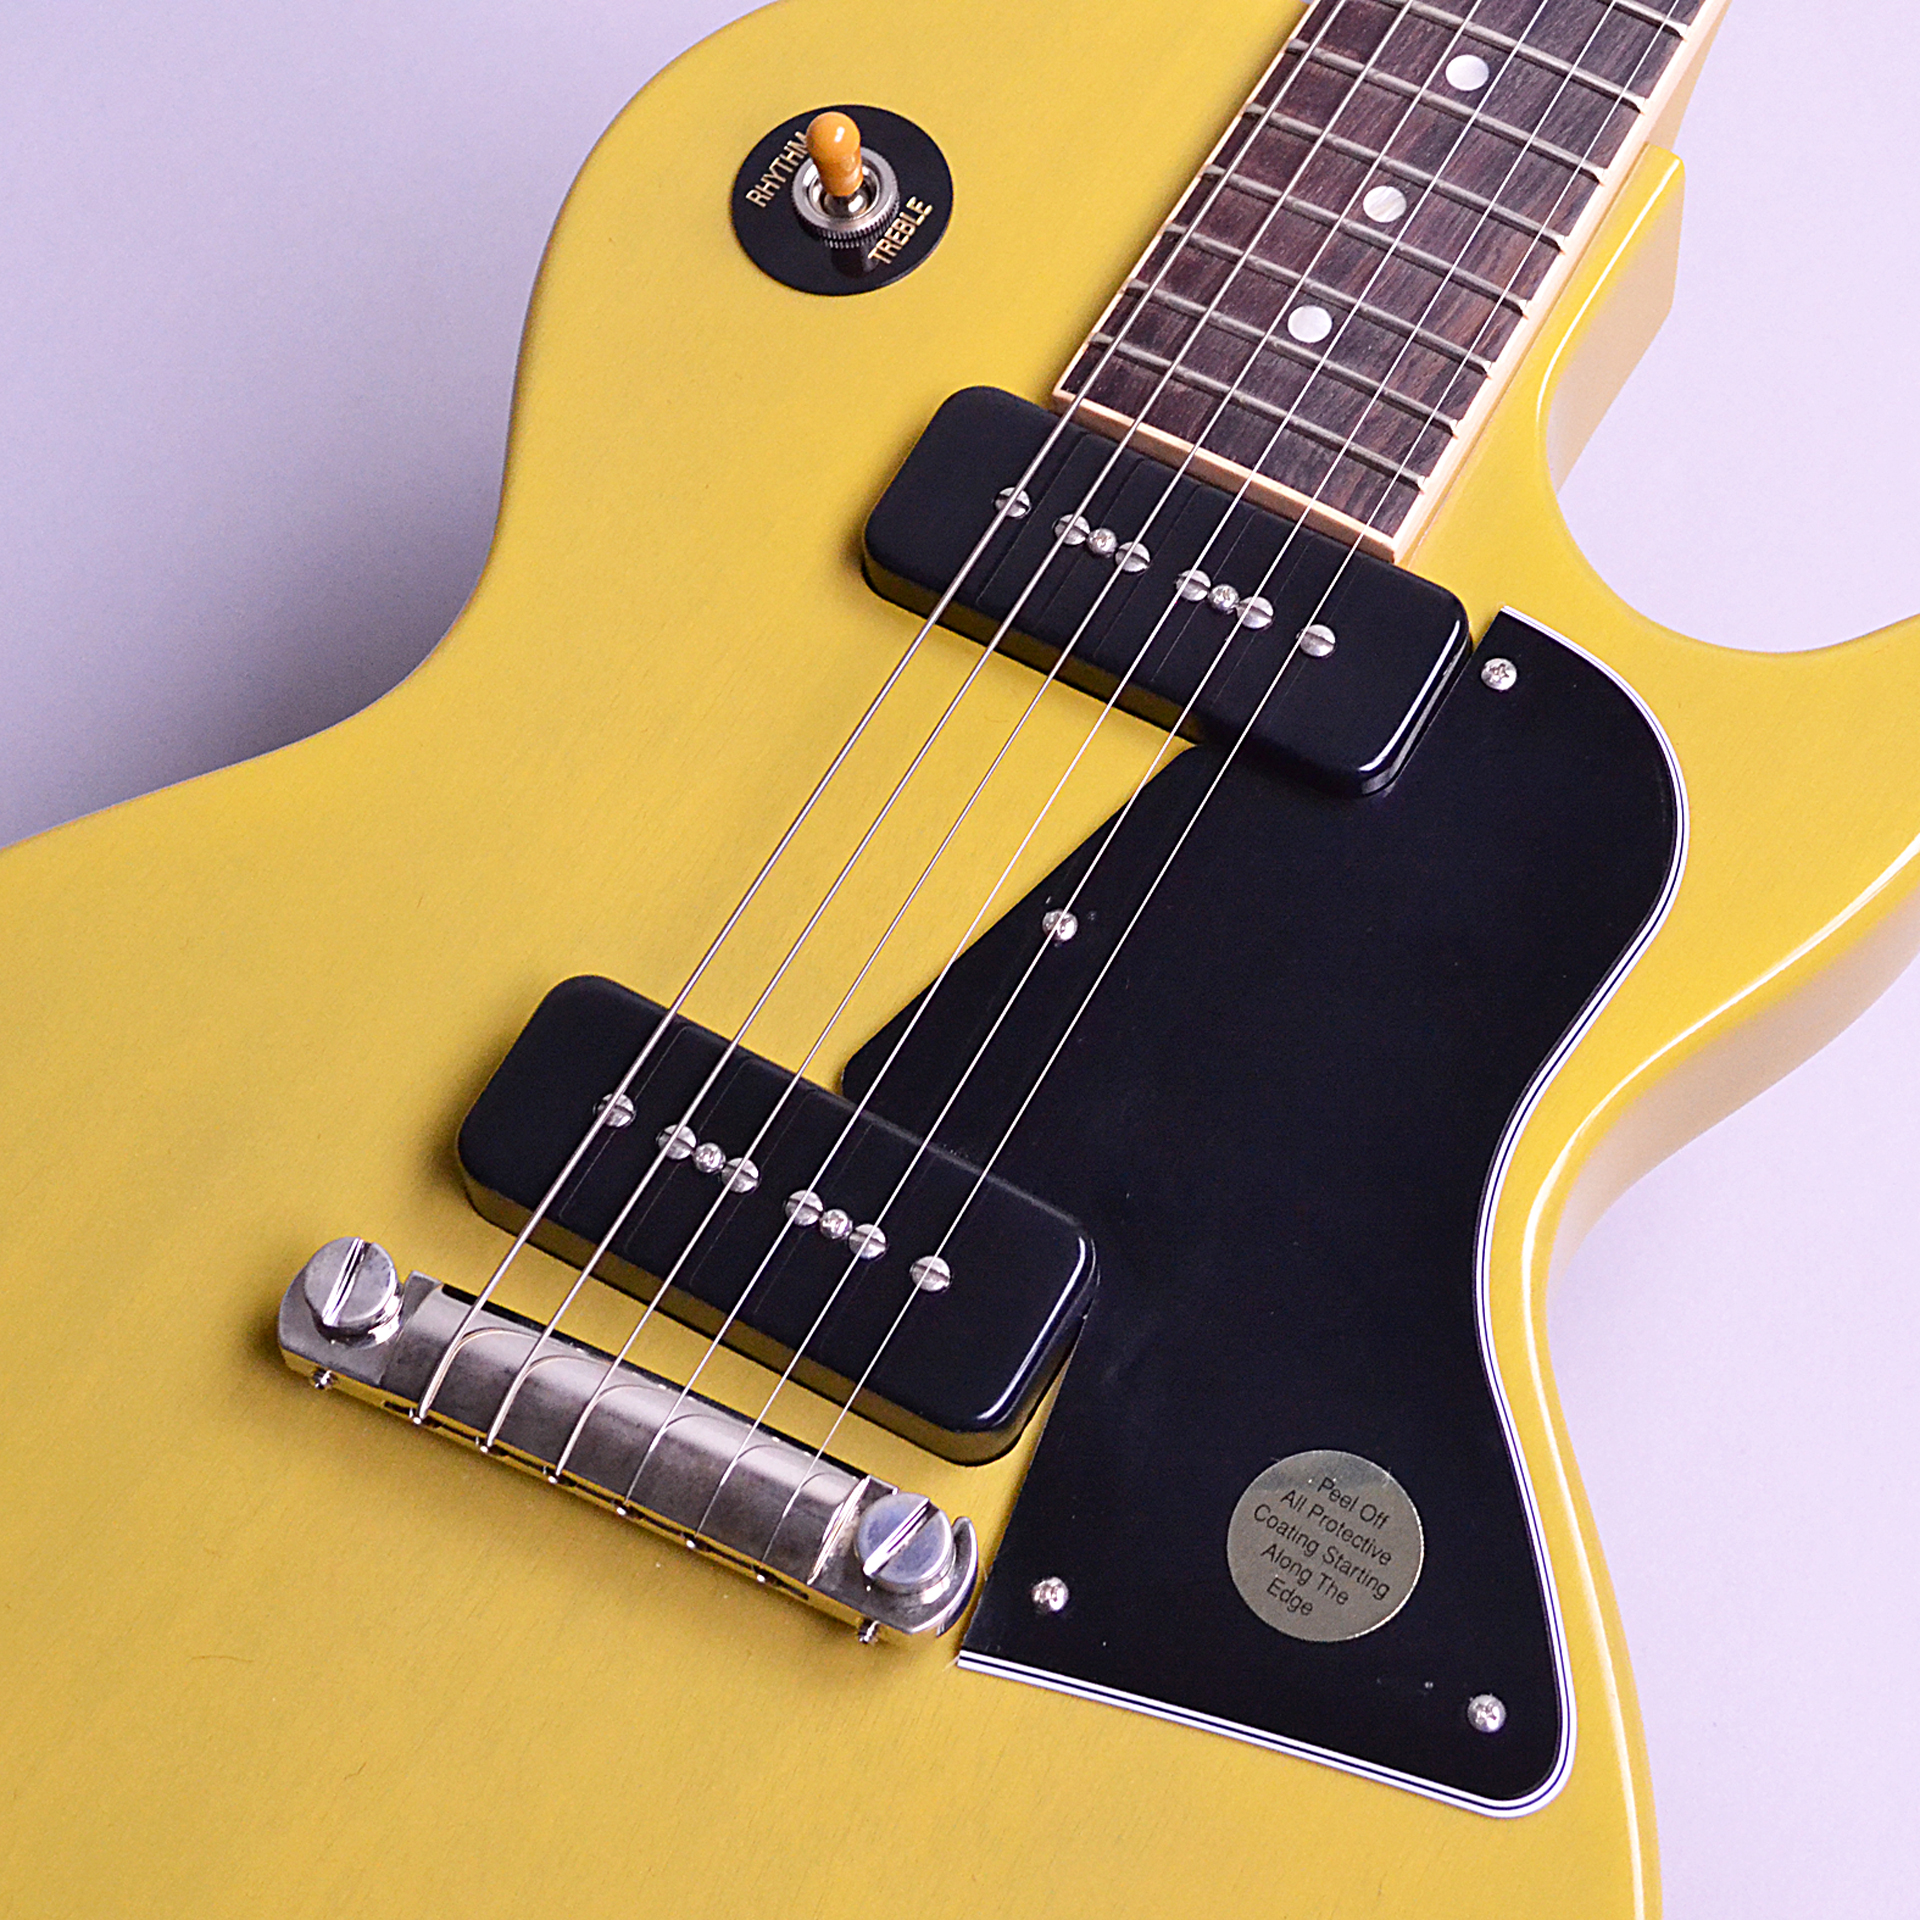 Les Paul Specialのヘッド画像